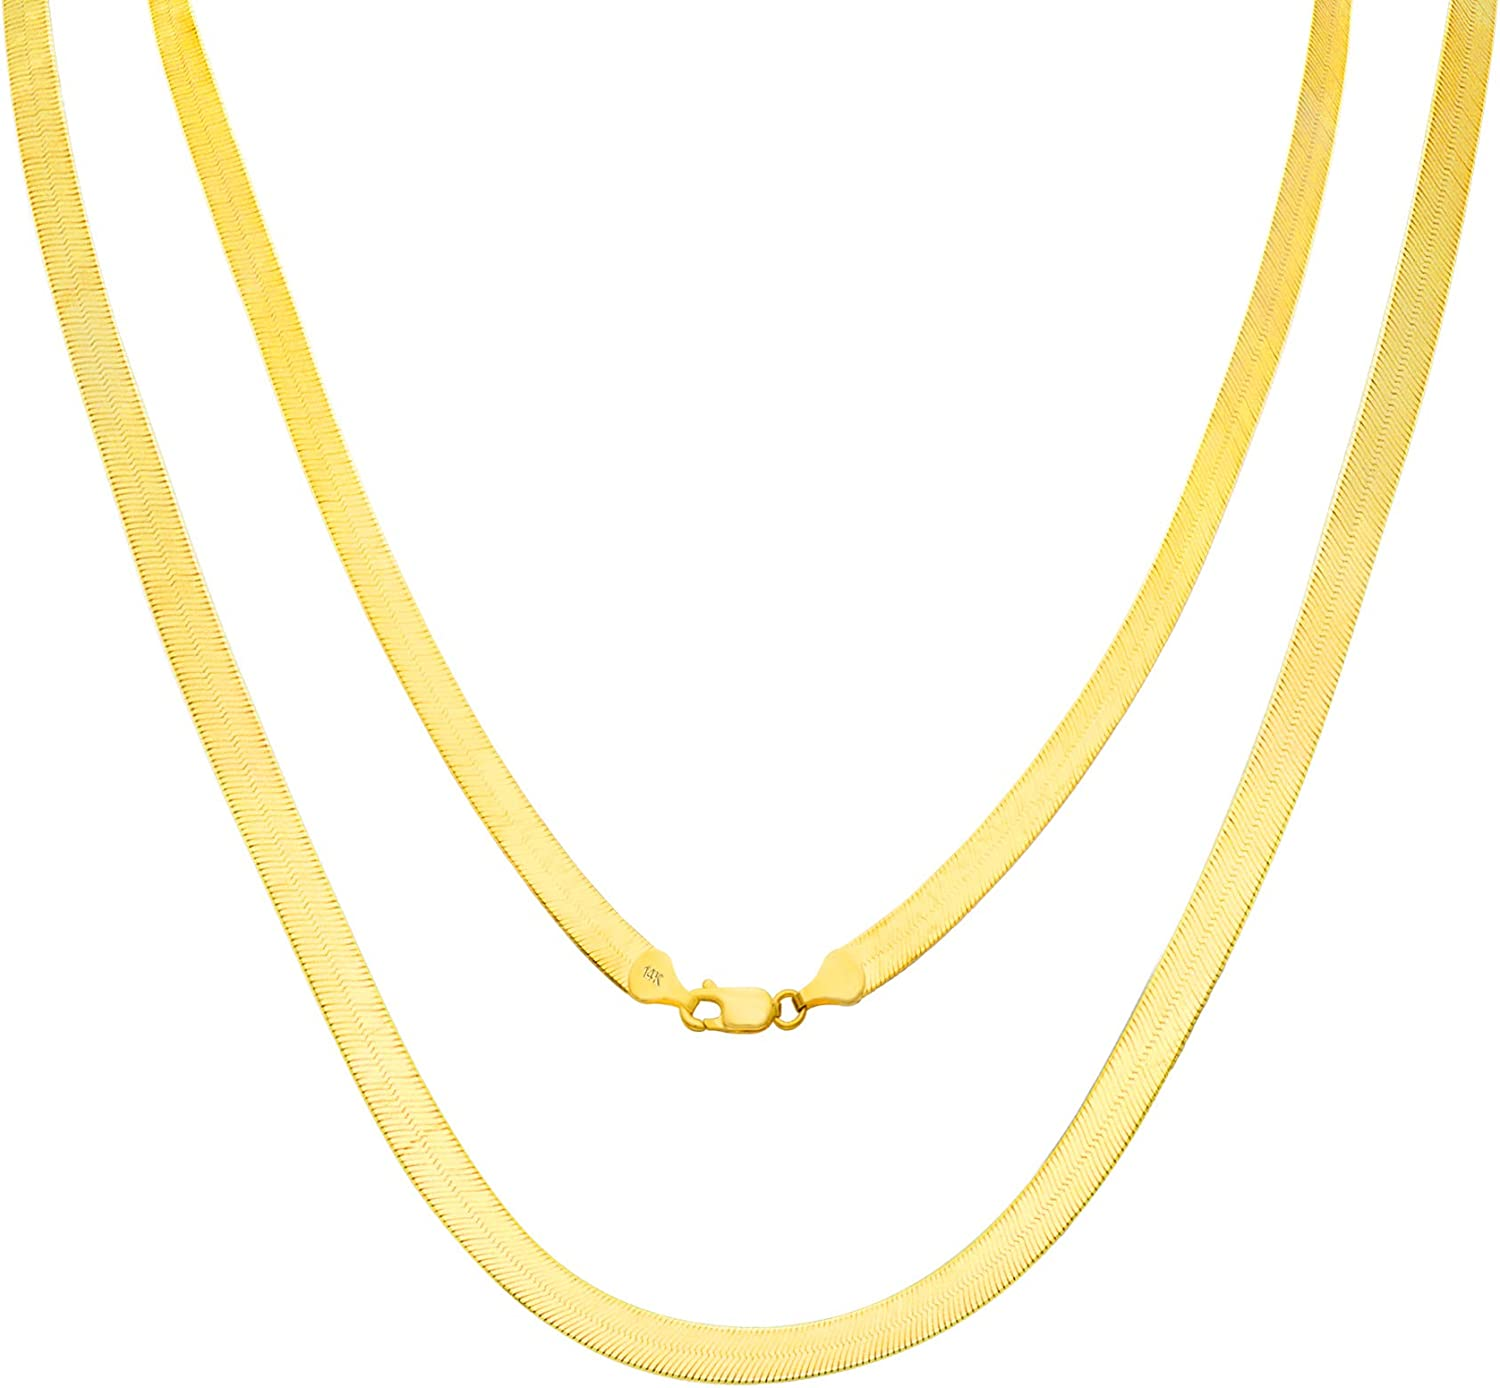 Nuragold 14k Yellow Gold 6mm Free shipping on posting reviews Solid Silky High Ranking TOP3 Flat P Herringbone